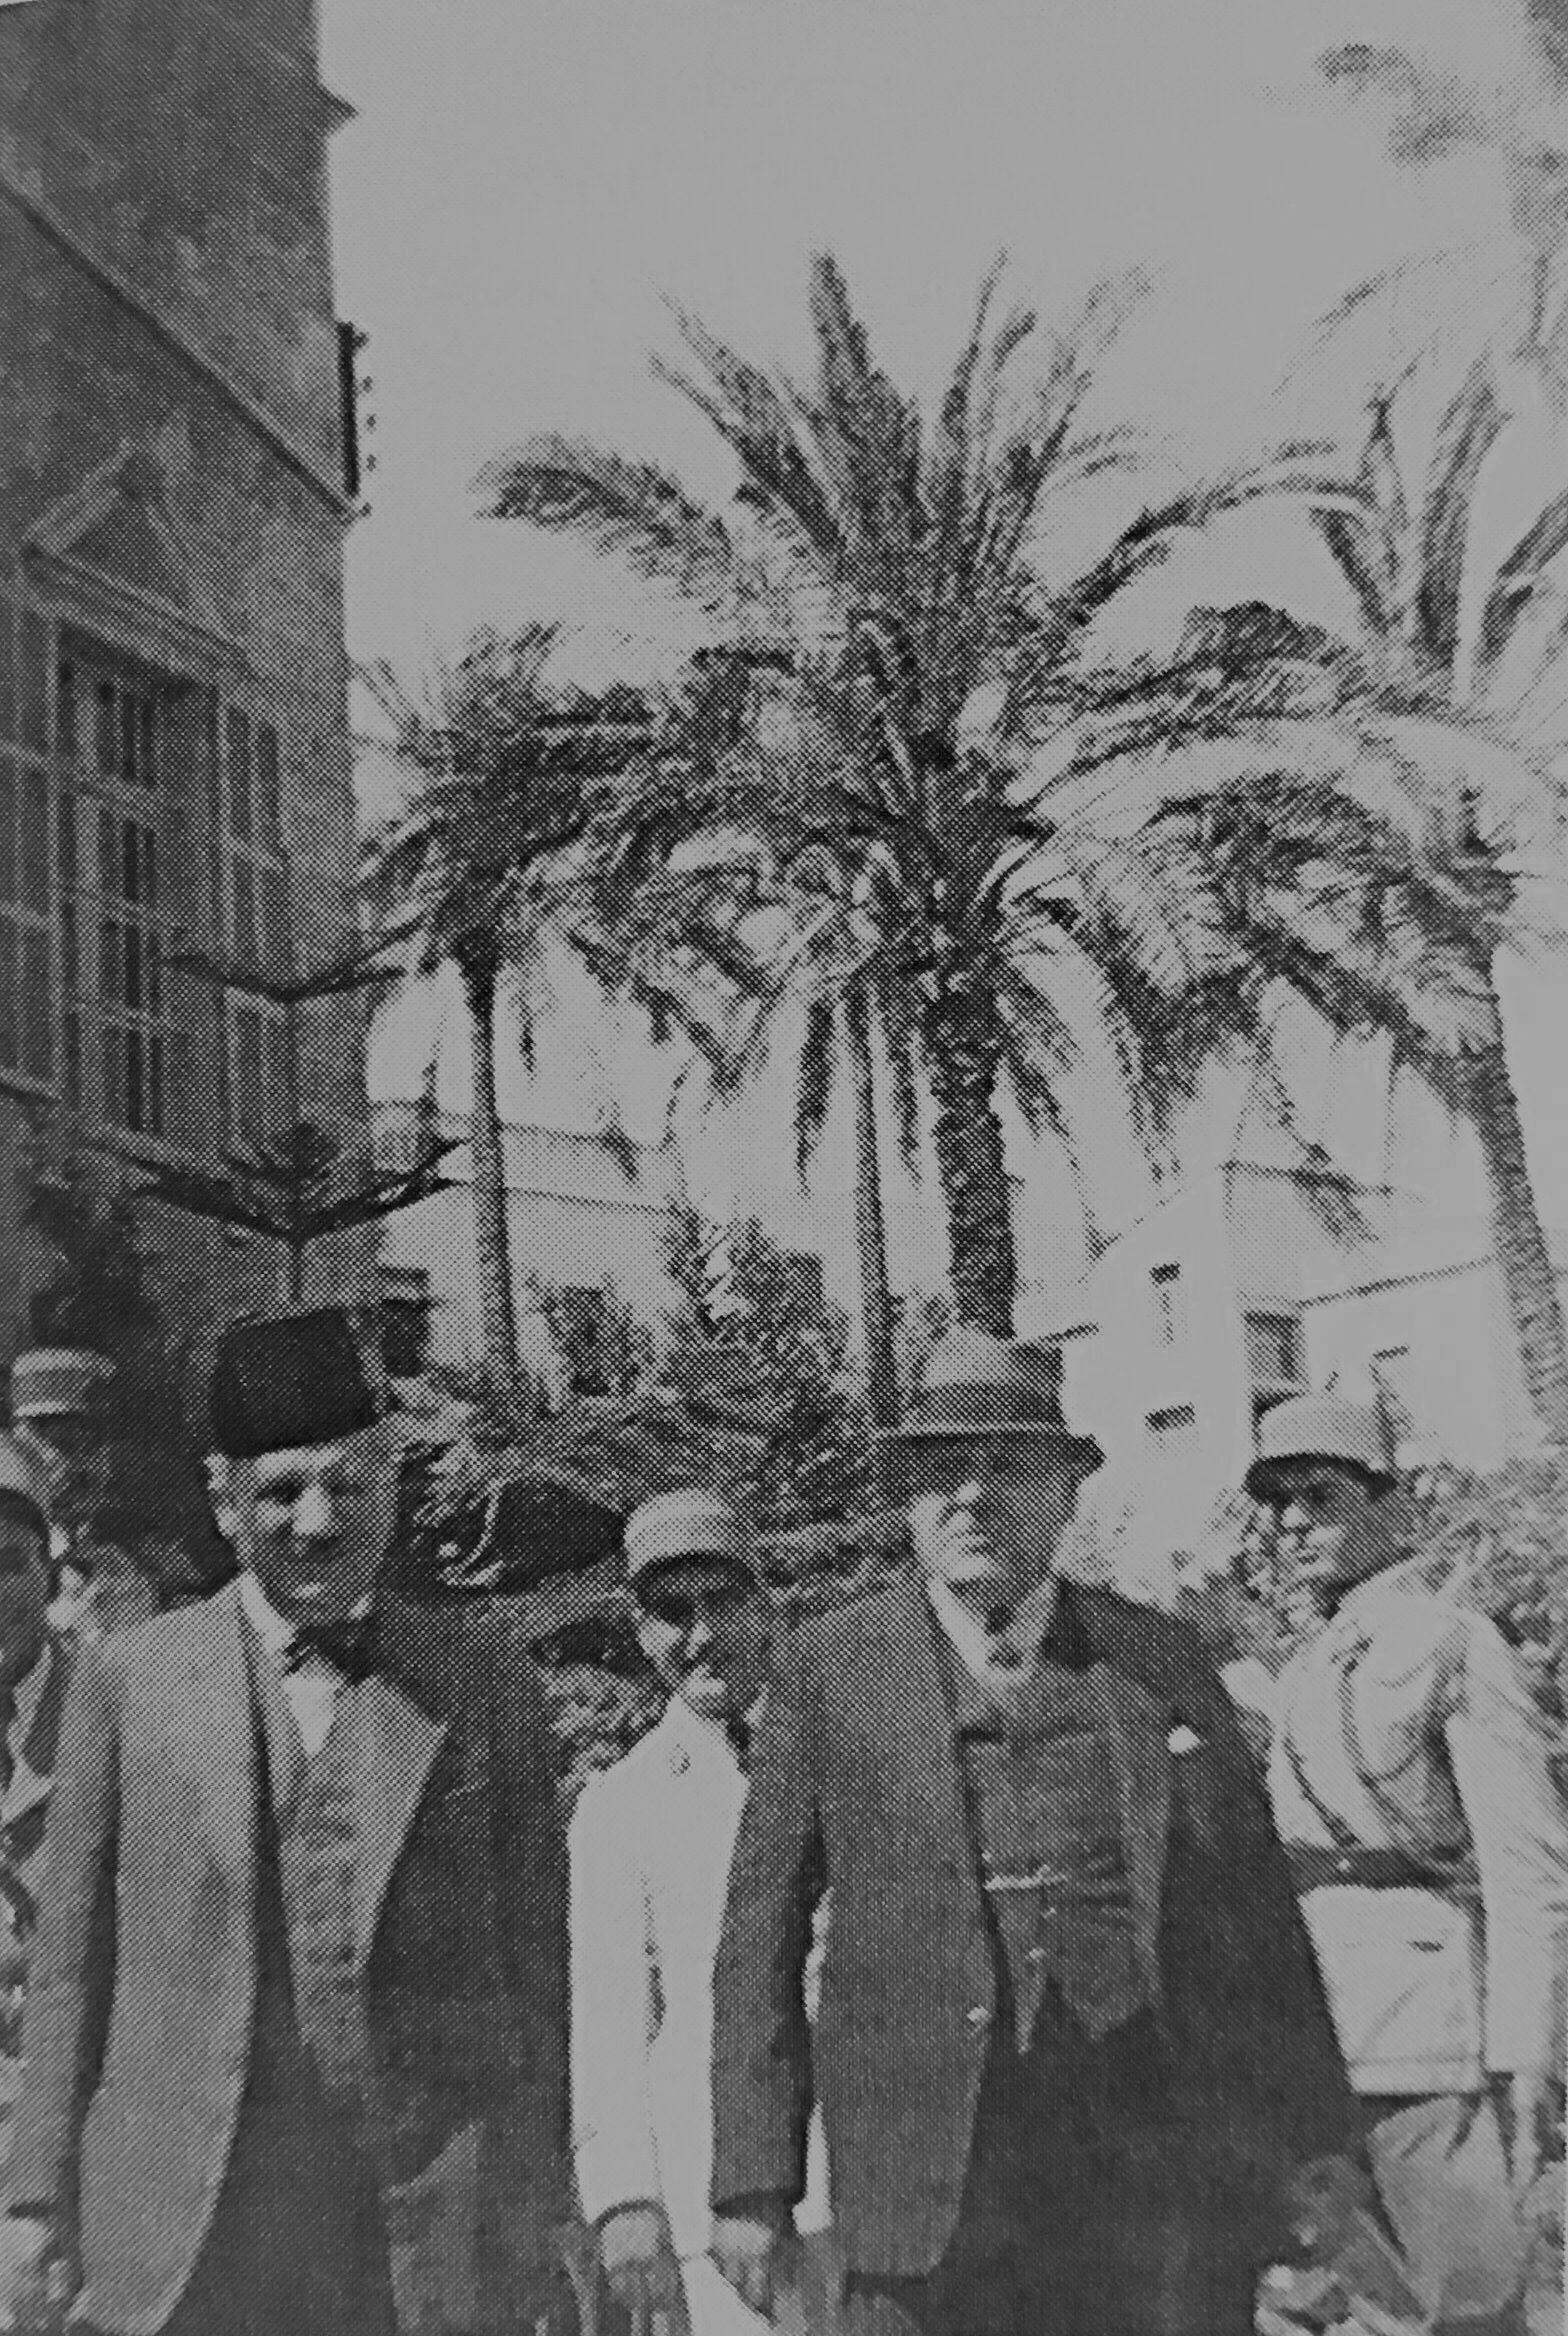 NEW BEIRUT ARCHIVE UPDATE - Lebanon Archive IndexBeirut Archive Index20 JUNE 2018: the 1940-1949 archive has been uploaded and ready for reading. It is a bit longer than usual with extra images as it is the decade of Lebanon's independence. We hope you all like this special edition, and hope that it is informative enough. Enjoy reading!